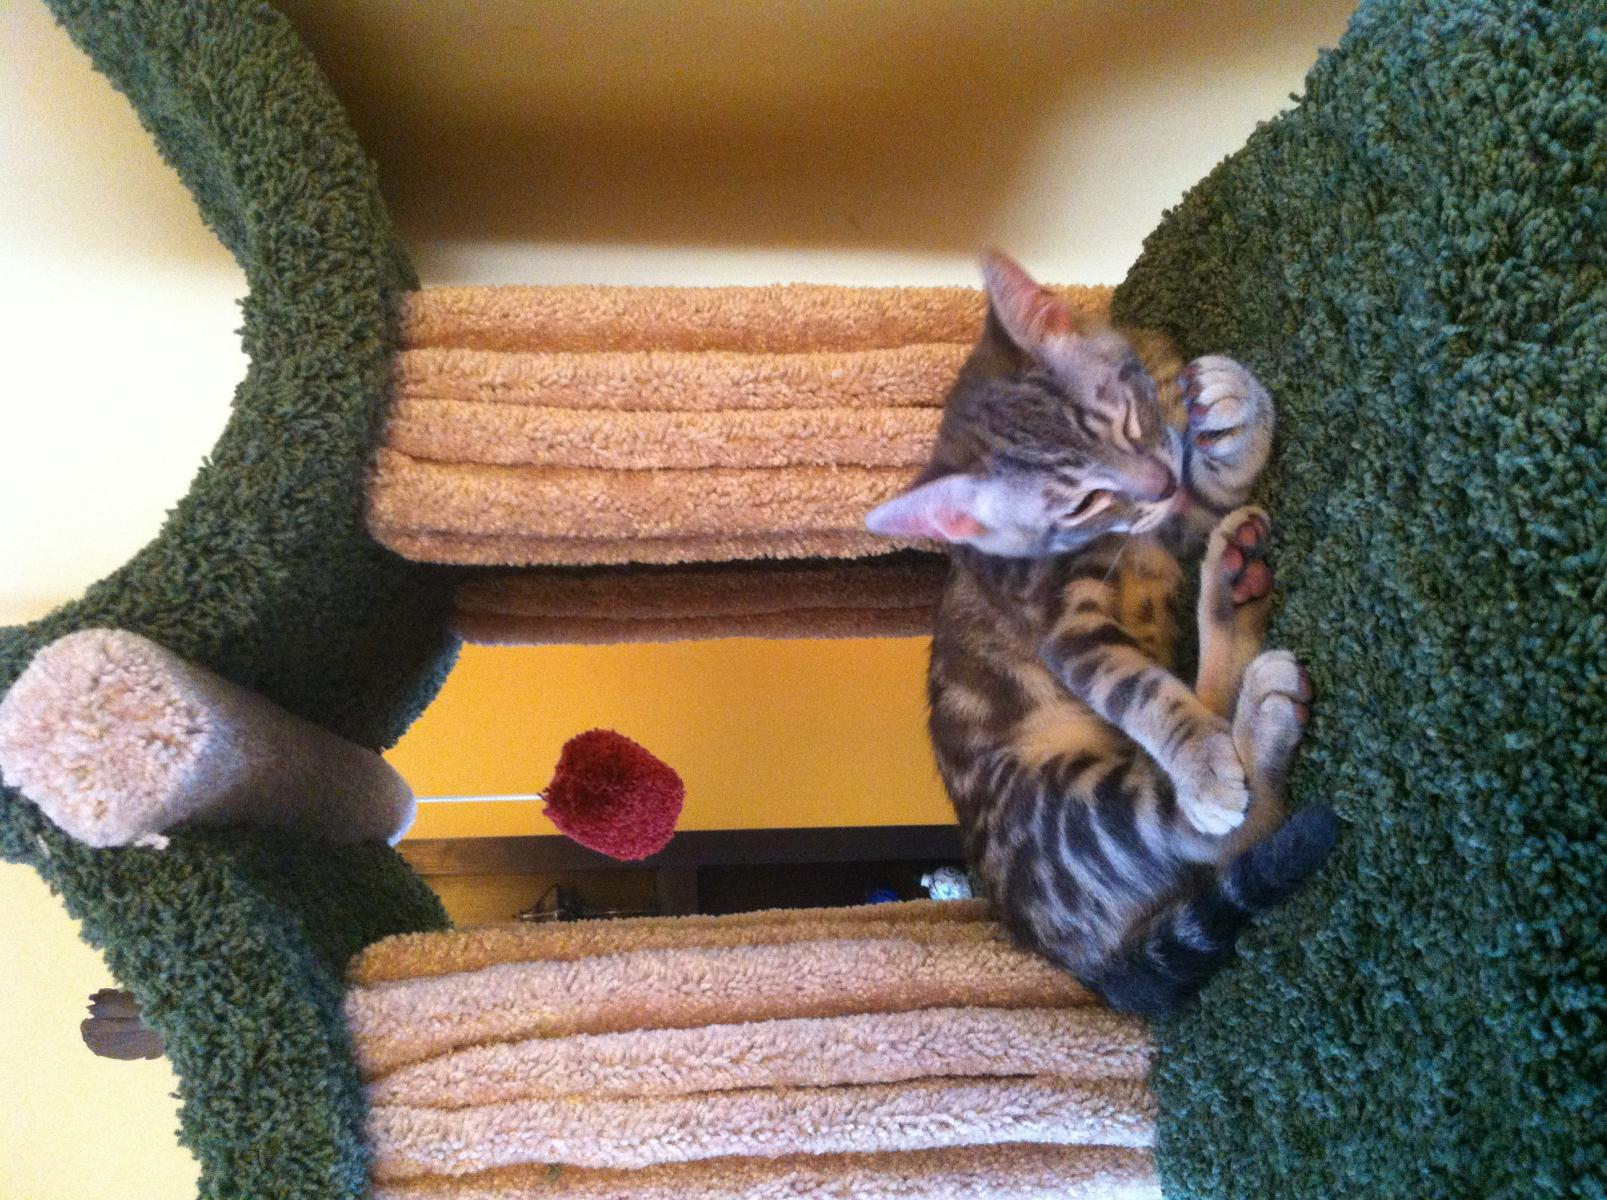 Building your own kitty jungle gym...-img_1392.jpg